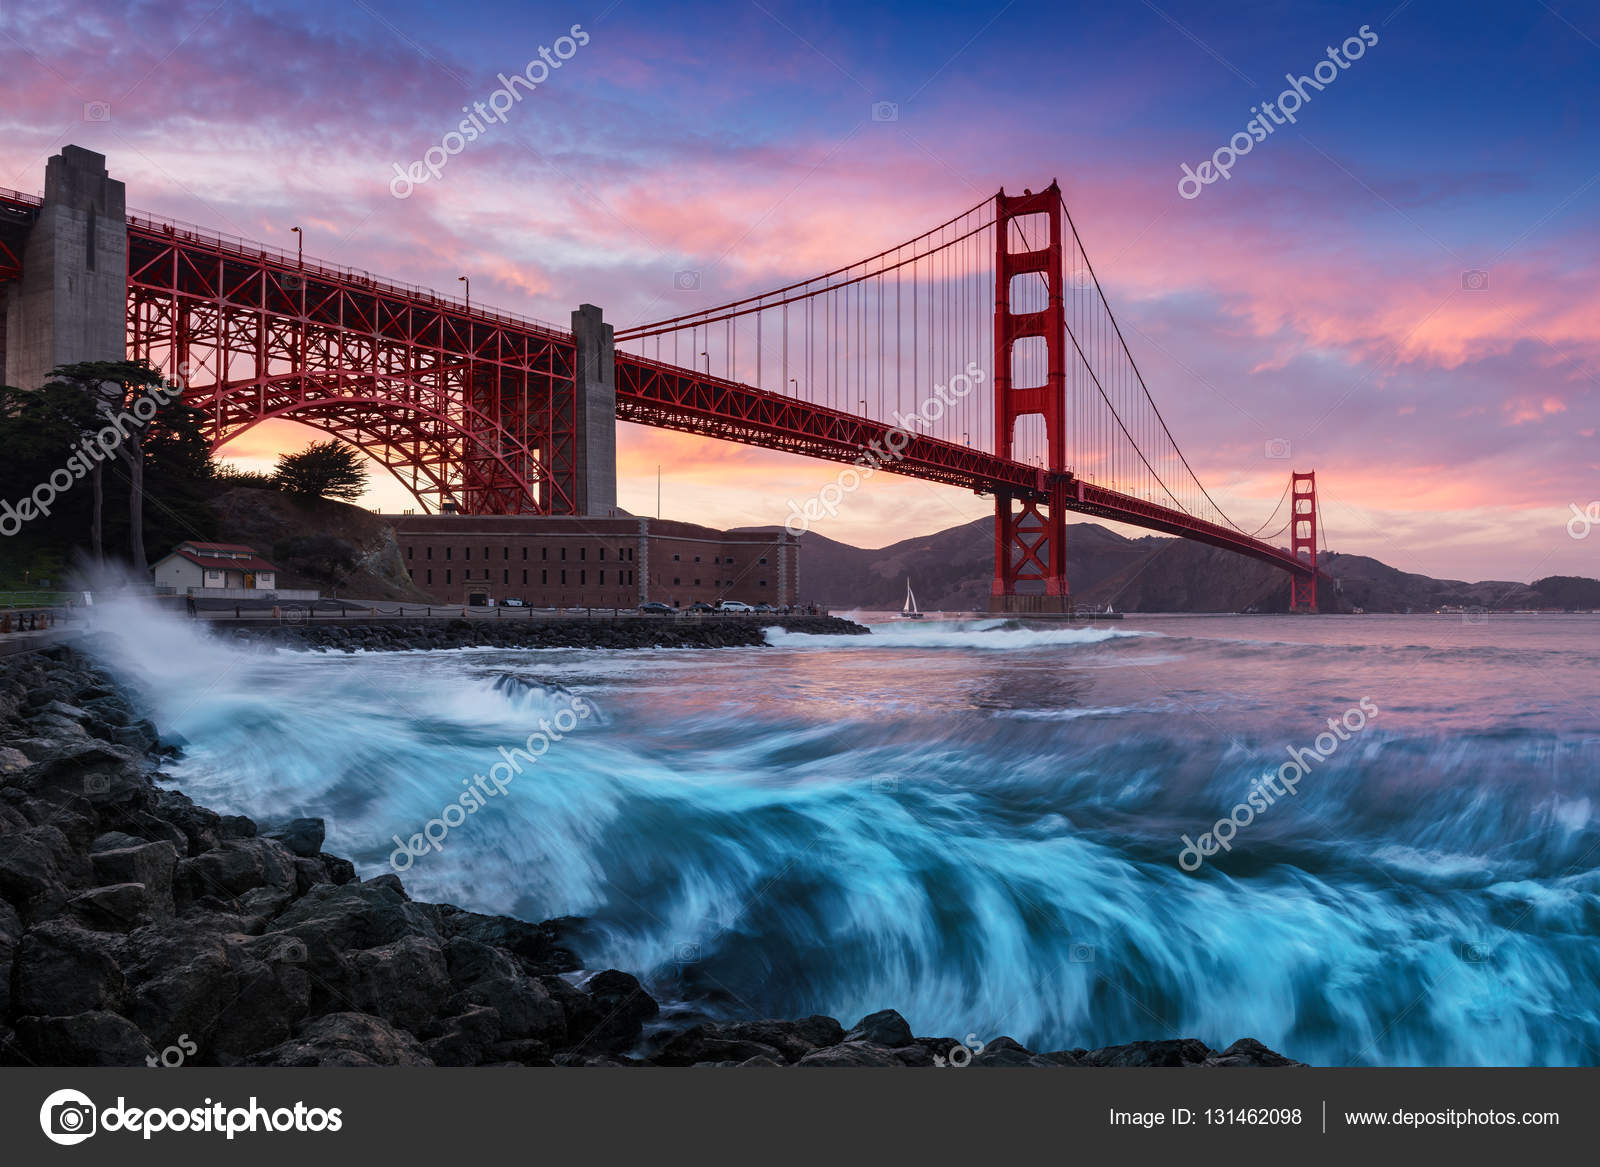 puente golden gate en san francisco al atardecer con incre bles olas de orilla del mar en primer. Black Bedroom Furniture Sets. Home Design Ideas